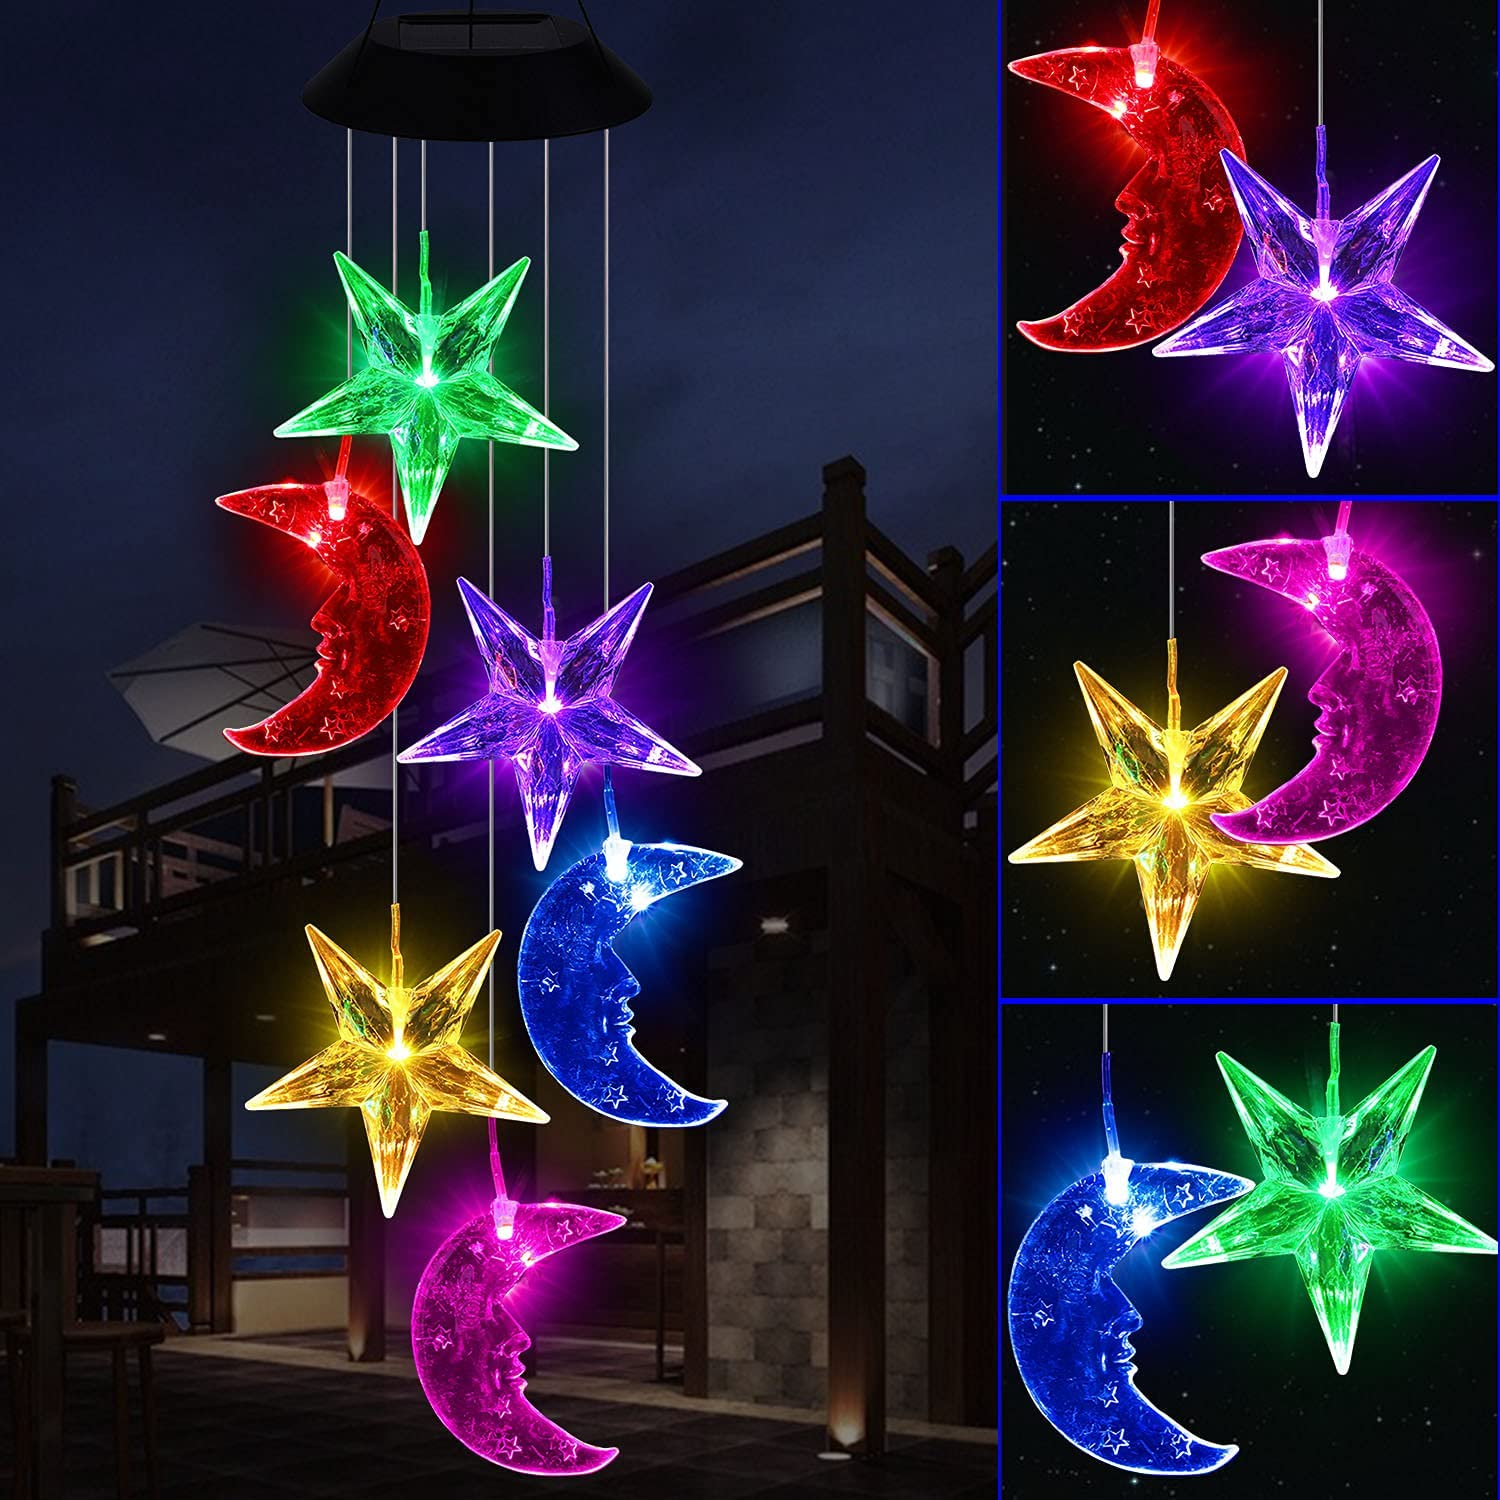 YMXBL Star&Moon Wind Chimes, Solar Color Changing Moon and Stars Wind Chimes Outdoor Decorative, Waterproof Solar Powered Moon&Star Lights, Romantic Wind Chime, Gifts for Women Home Patio Garden Decor